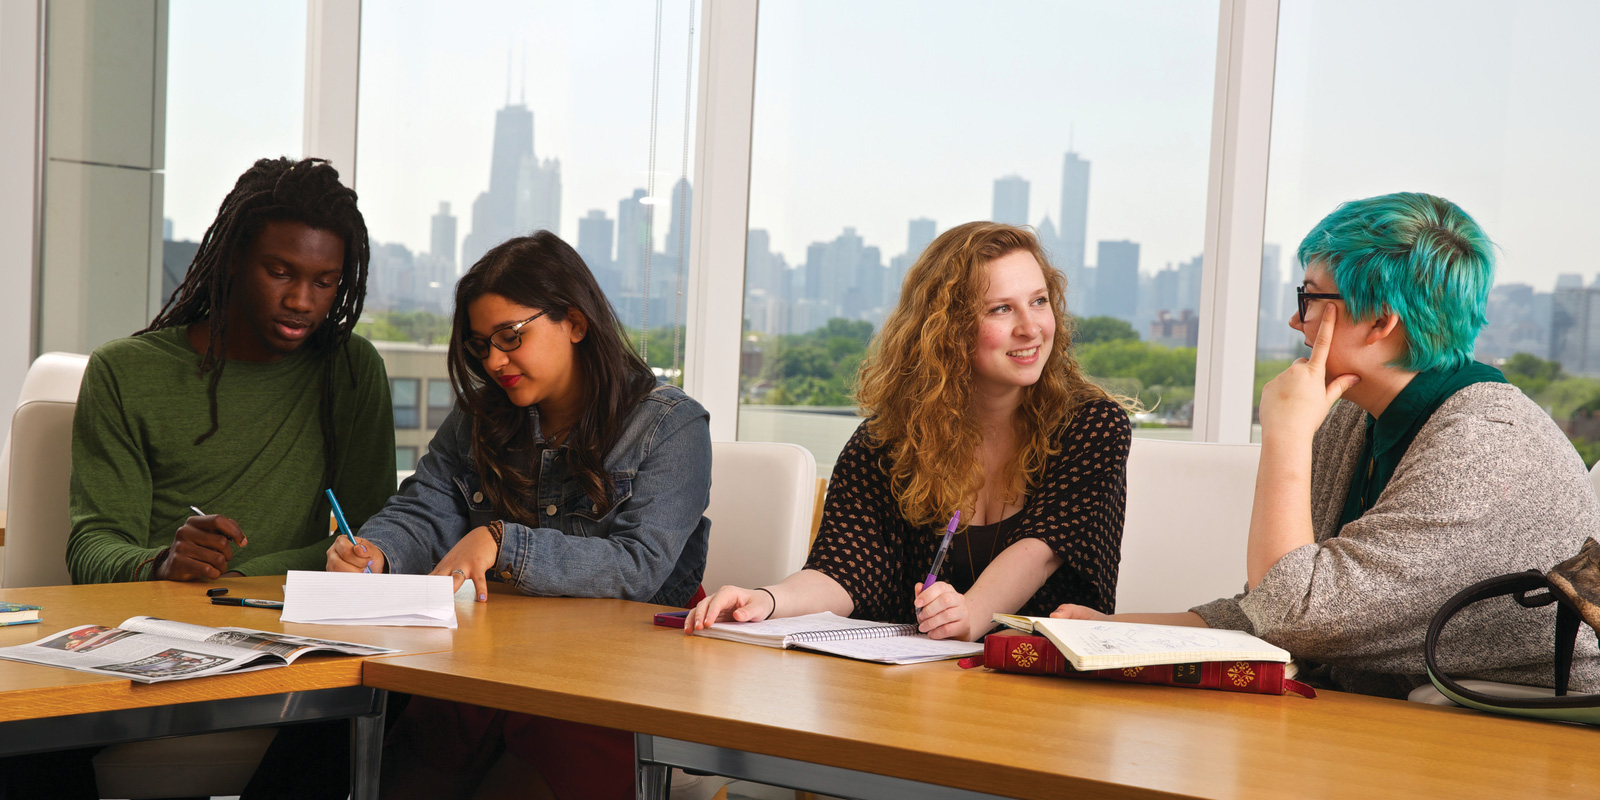 Students reviewing class notes behind the Chicago skyline.